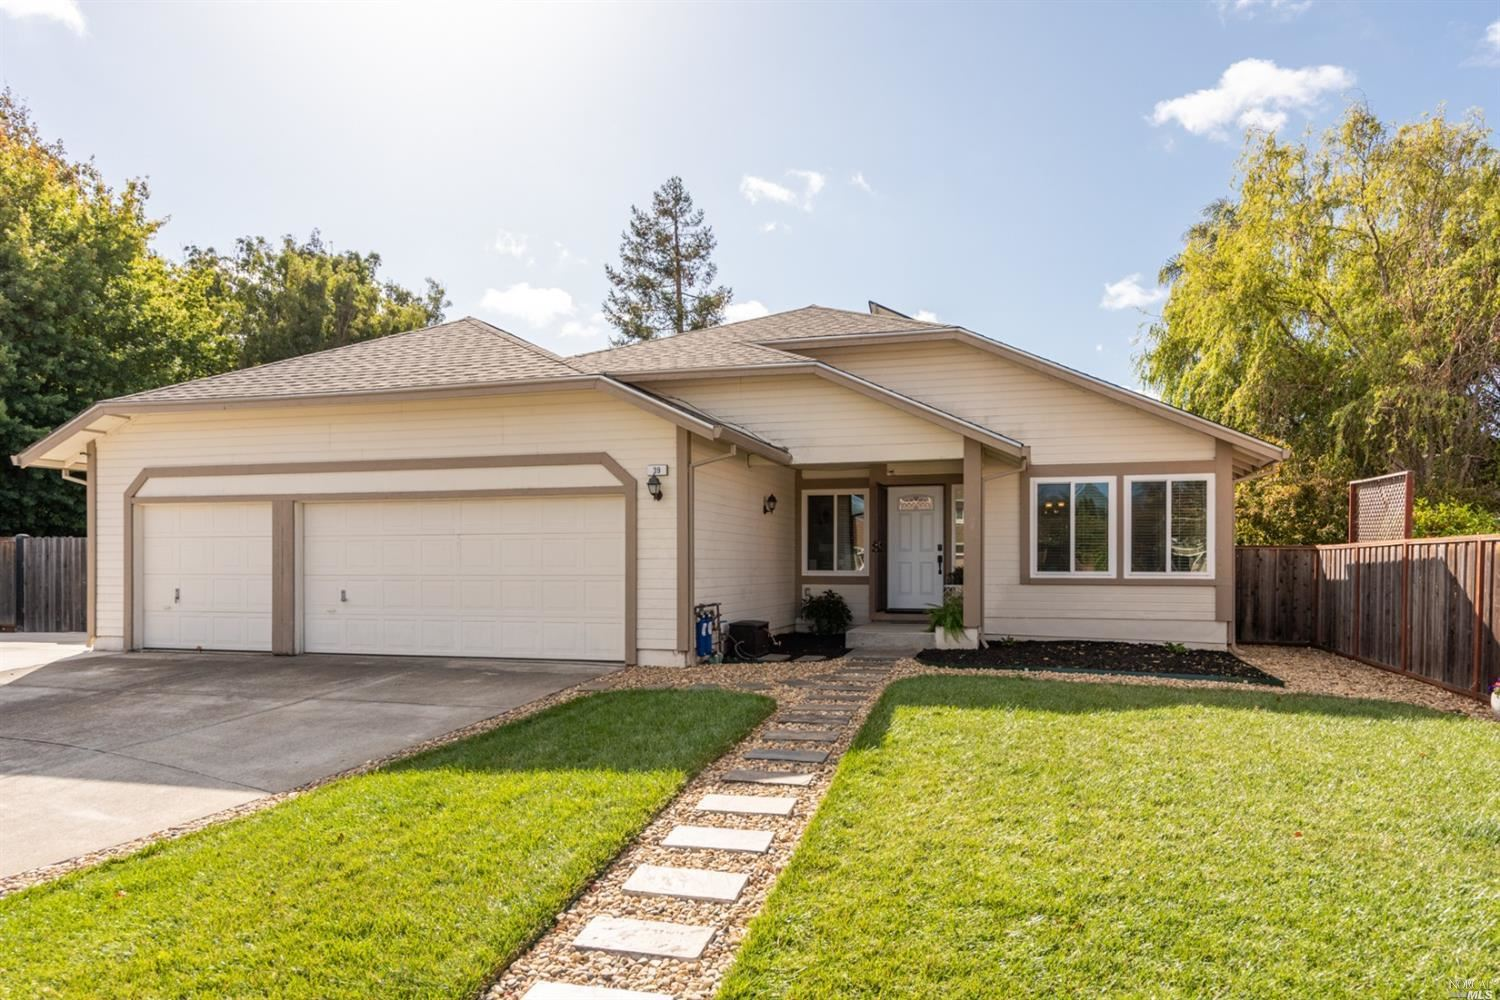 39 Abbey Court, American Canyon, CA 94503 - MLS#: 321097485